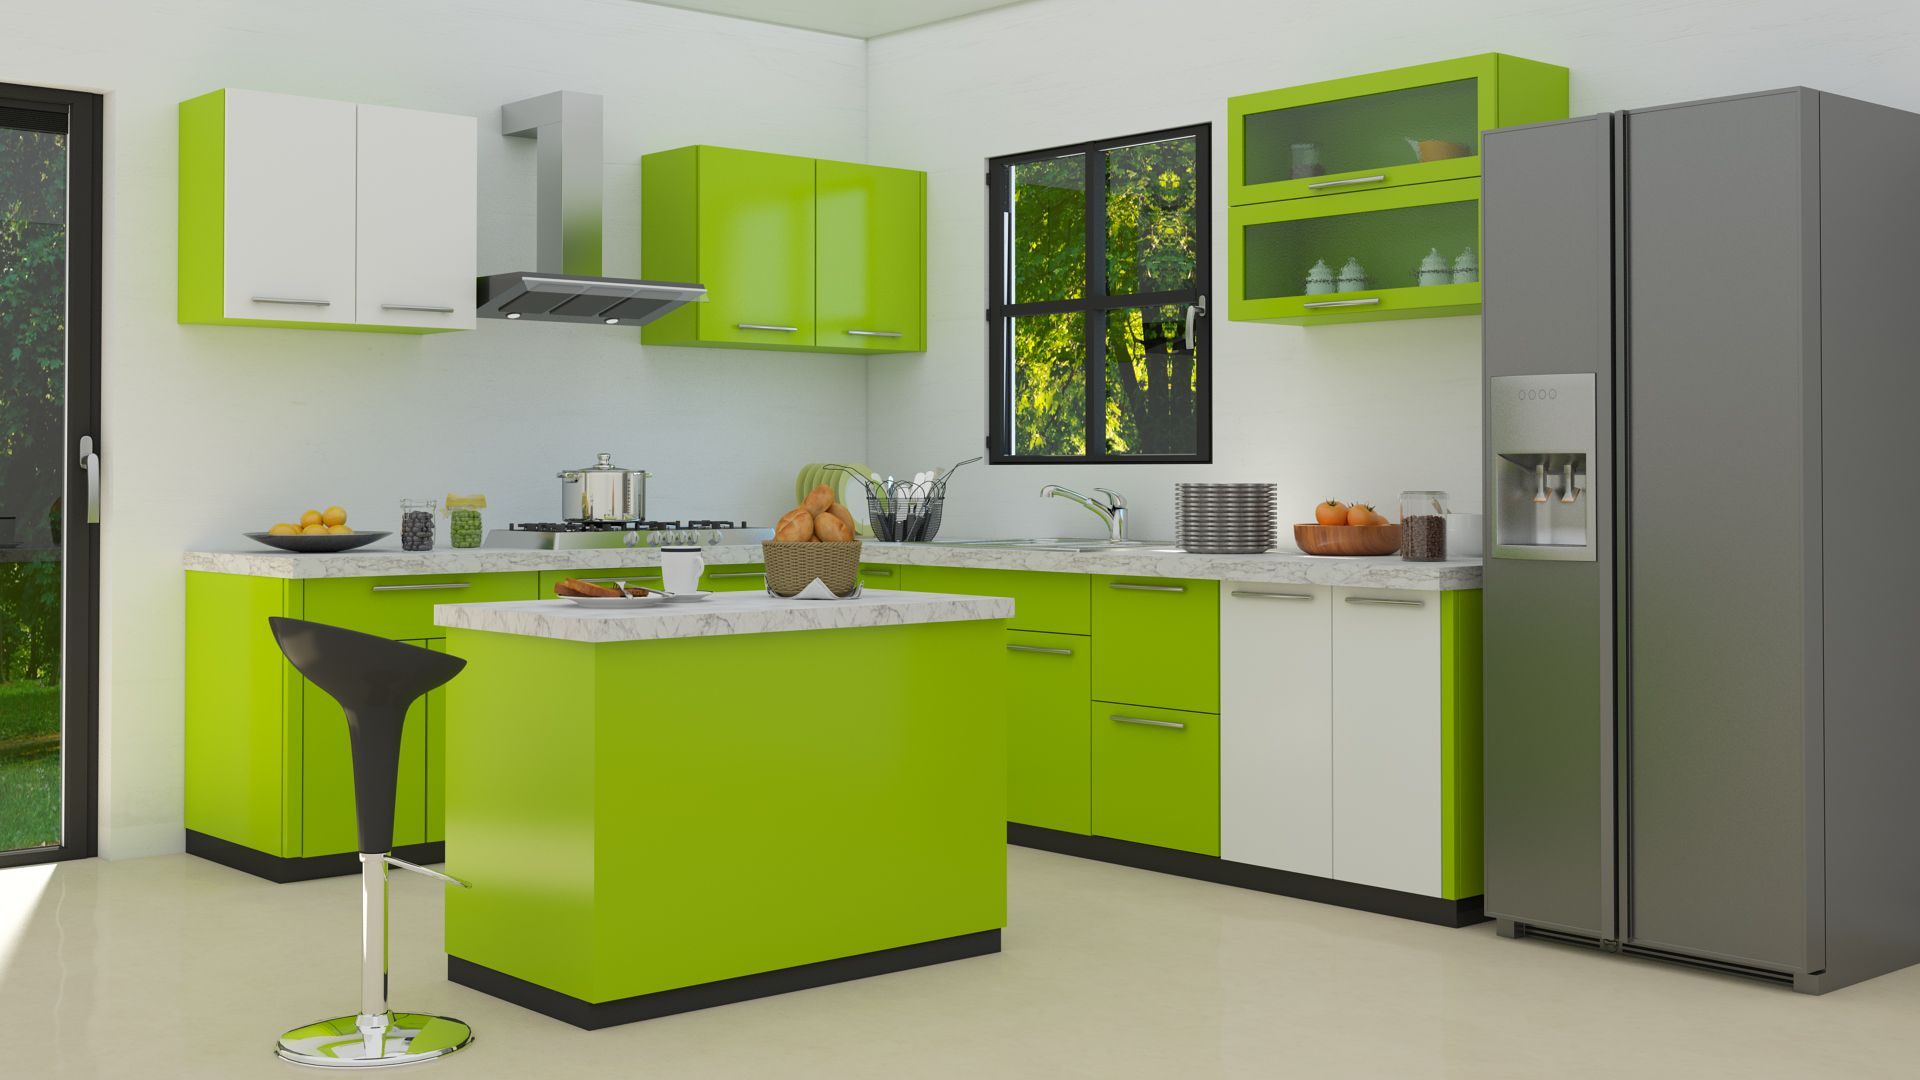 5 Reasons Why Modular Kitchen Designs Are The Latest Trend In Home Decor Beautiful Kitchen Cabinets Kitchen Cabinet Design New Kitchen Cabinets